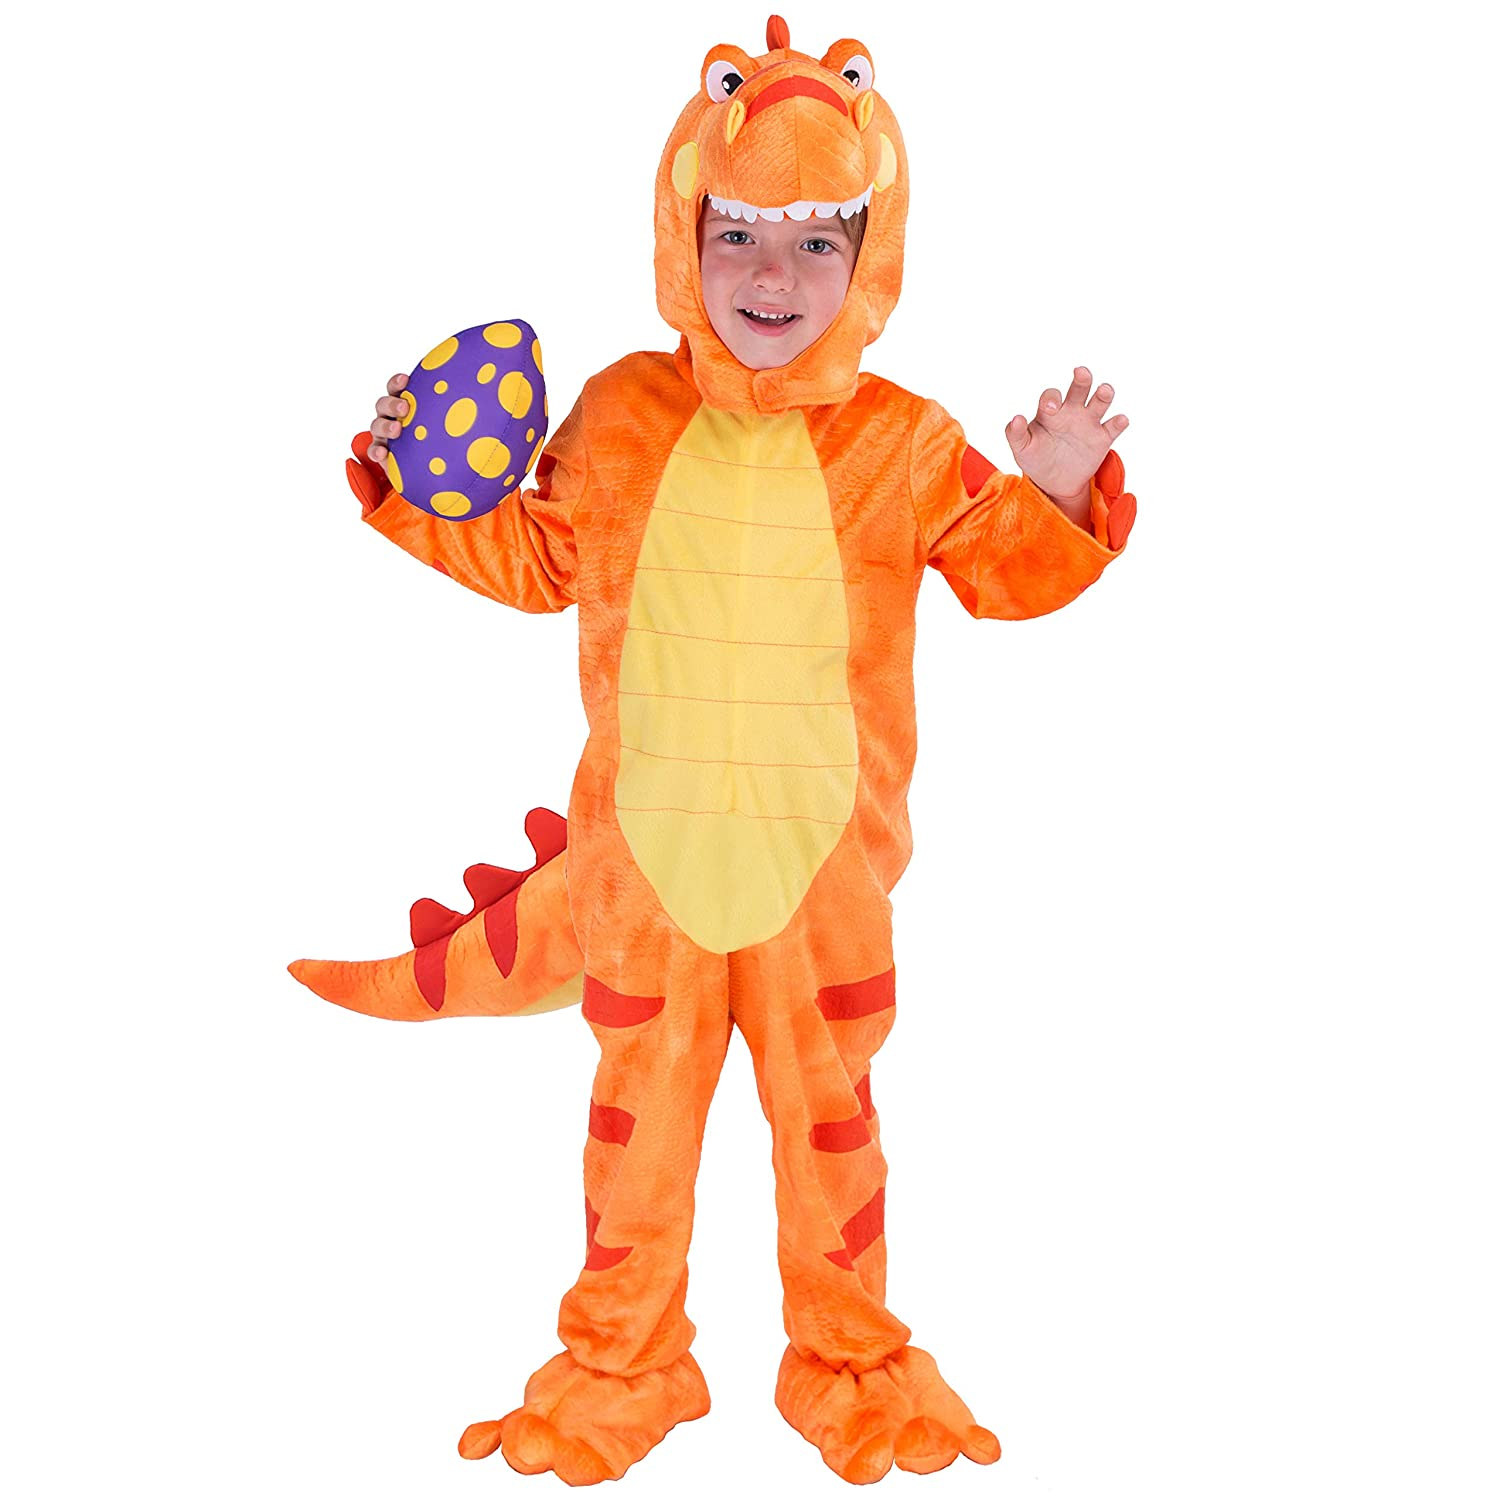 Spooktacular Creations T-Rex Deluxe Kids Dinosaur Costume for Halloween Child Dinosaur Dress Up Party, Role Play and Cosplay Joyin Inc